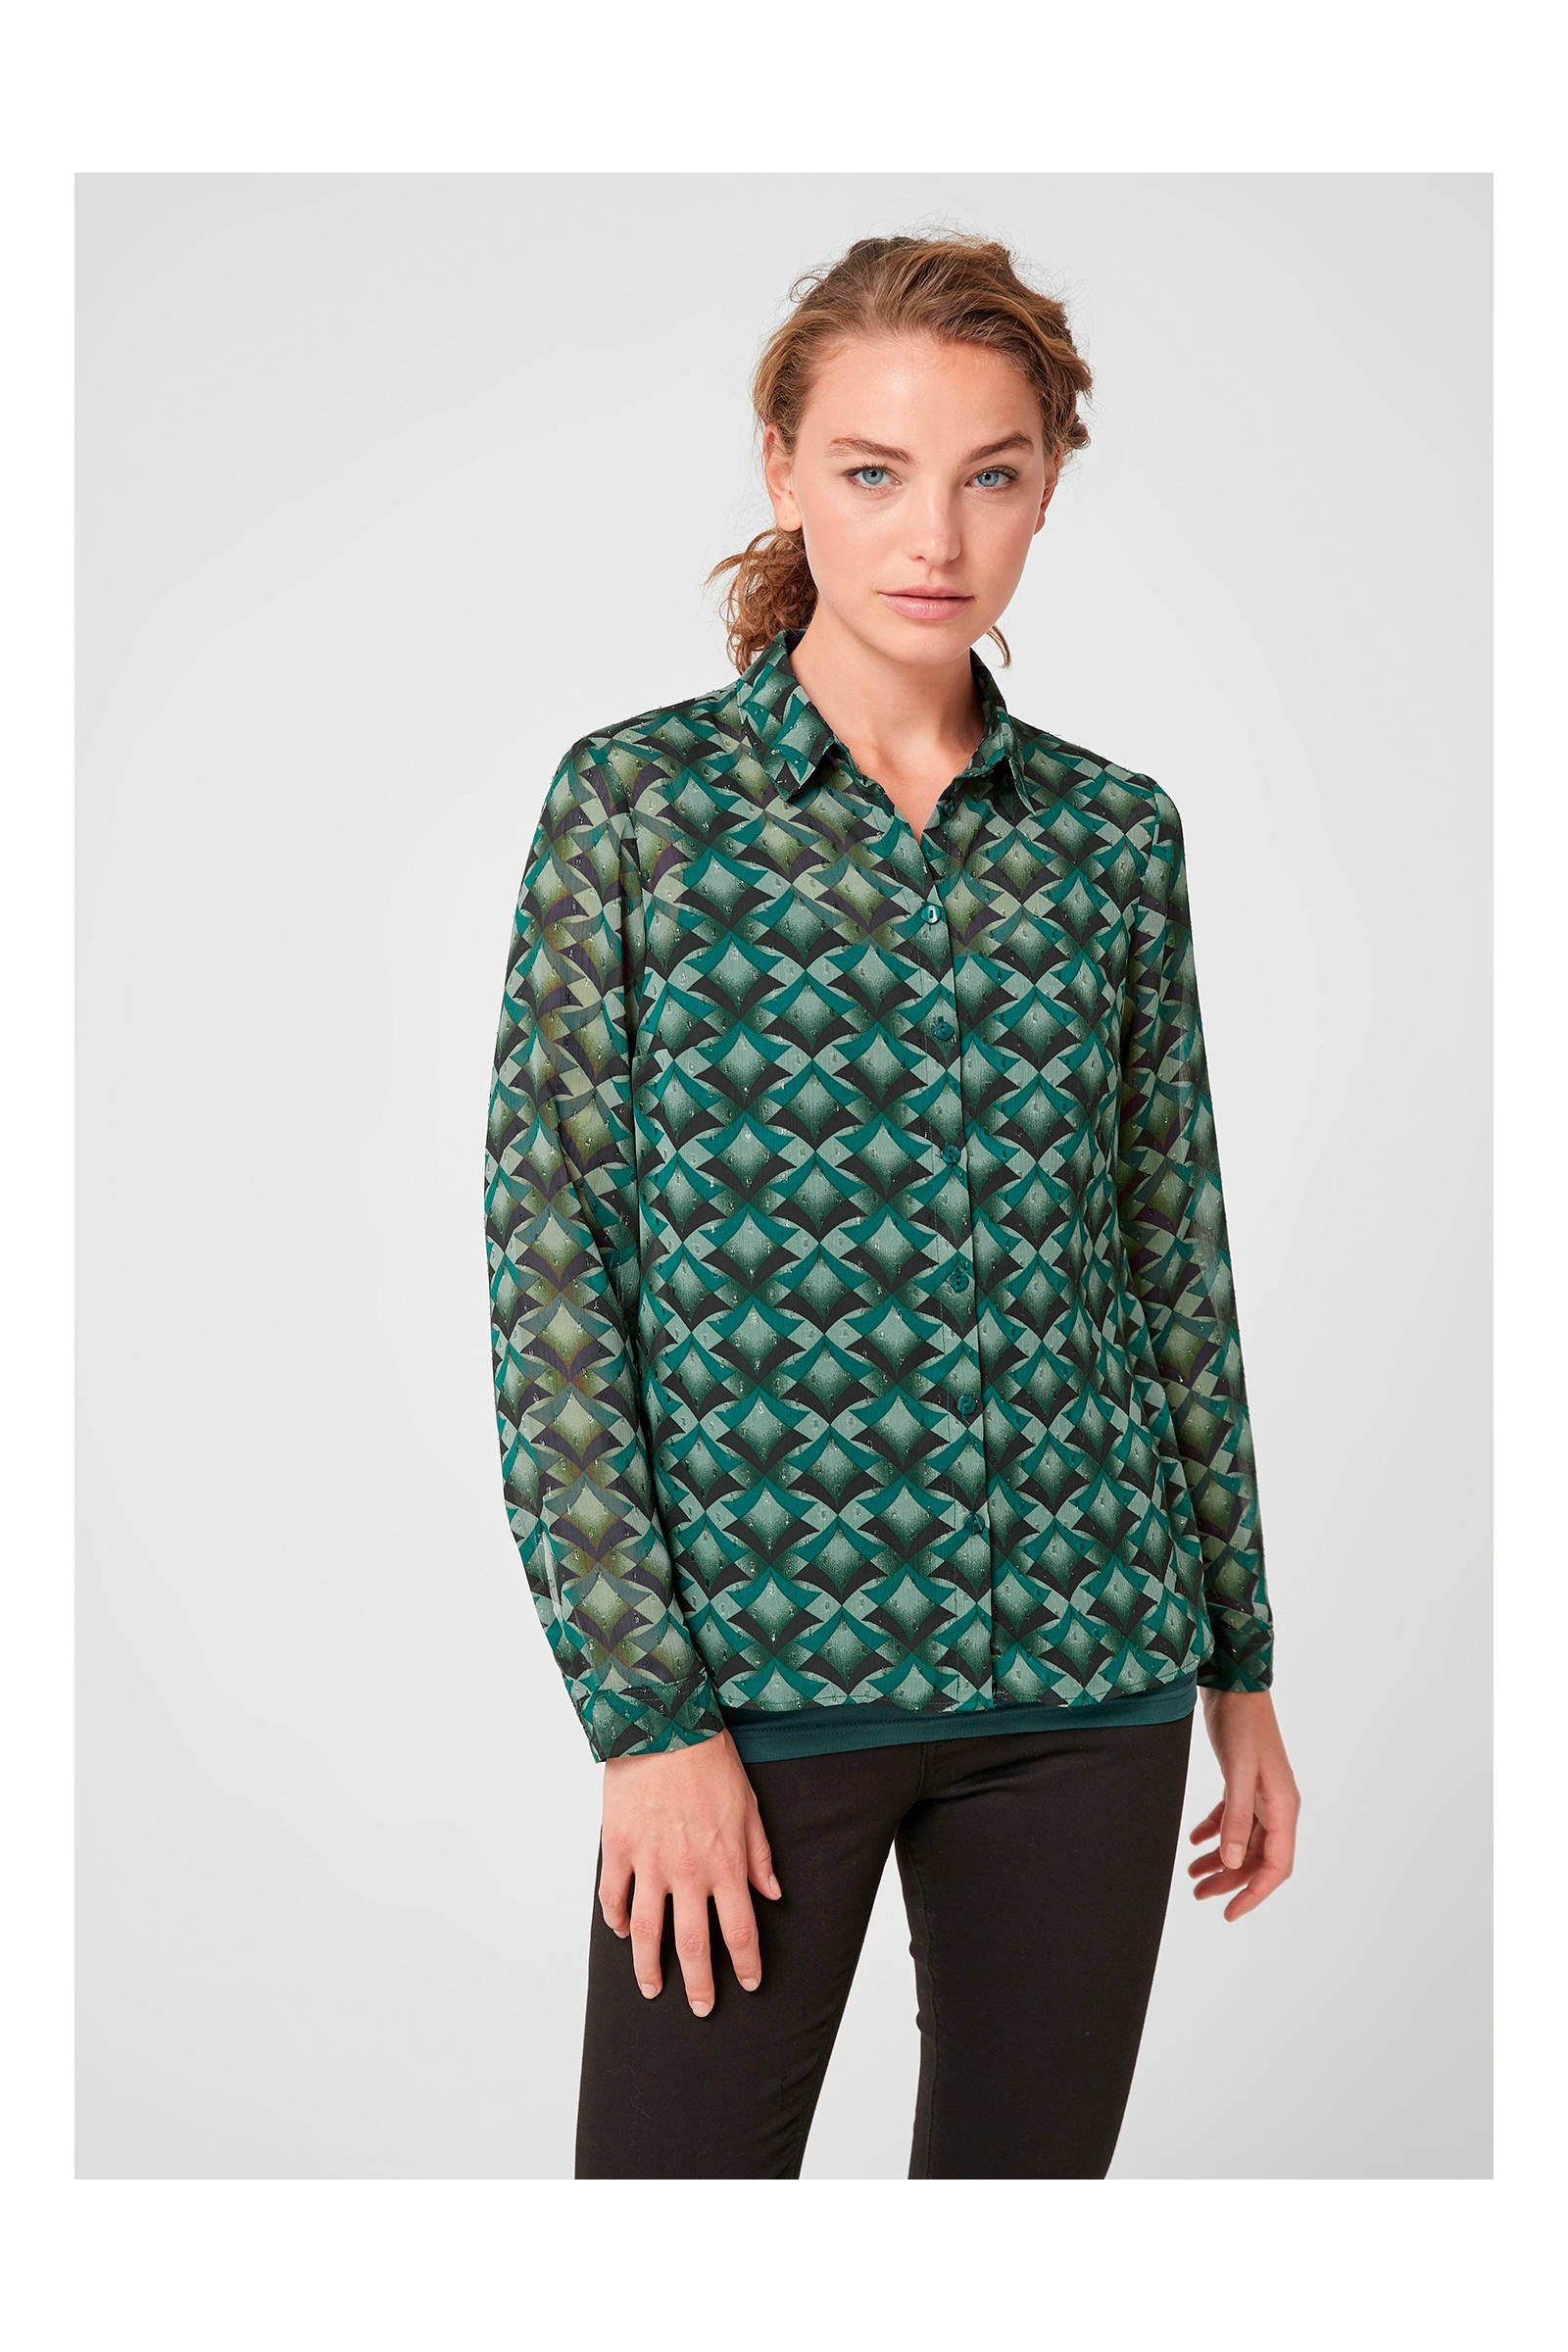 86277ad21872be designed groen met print QS grafische blouse wehkamp by Tdw1FqY